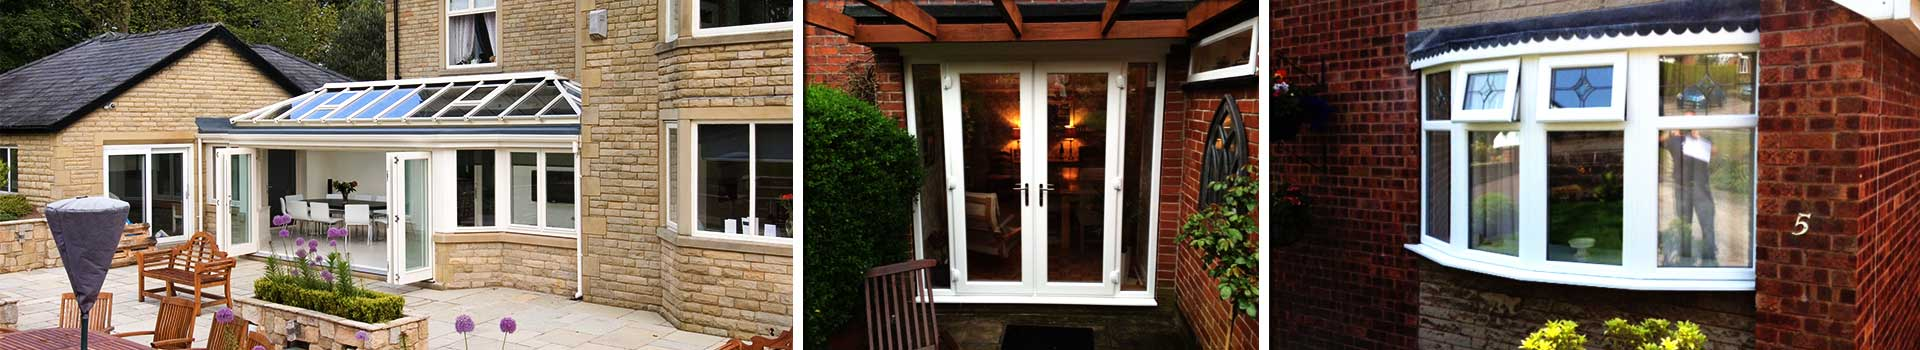 replacemnt sheffield windows installed on a huge family home resulting in a modern contempory look